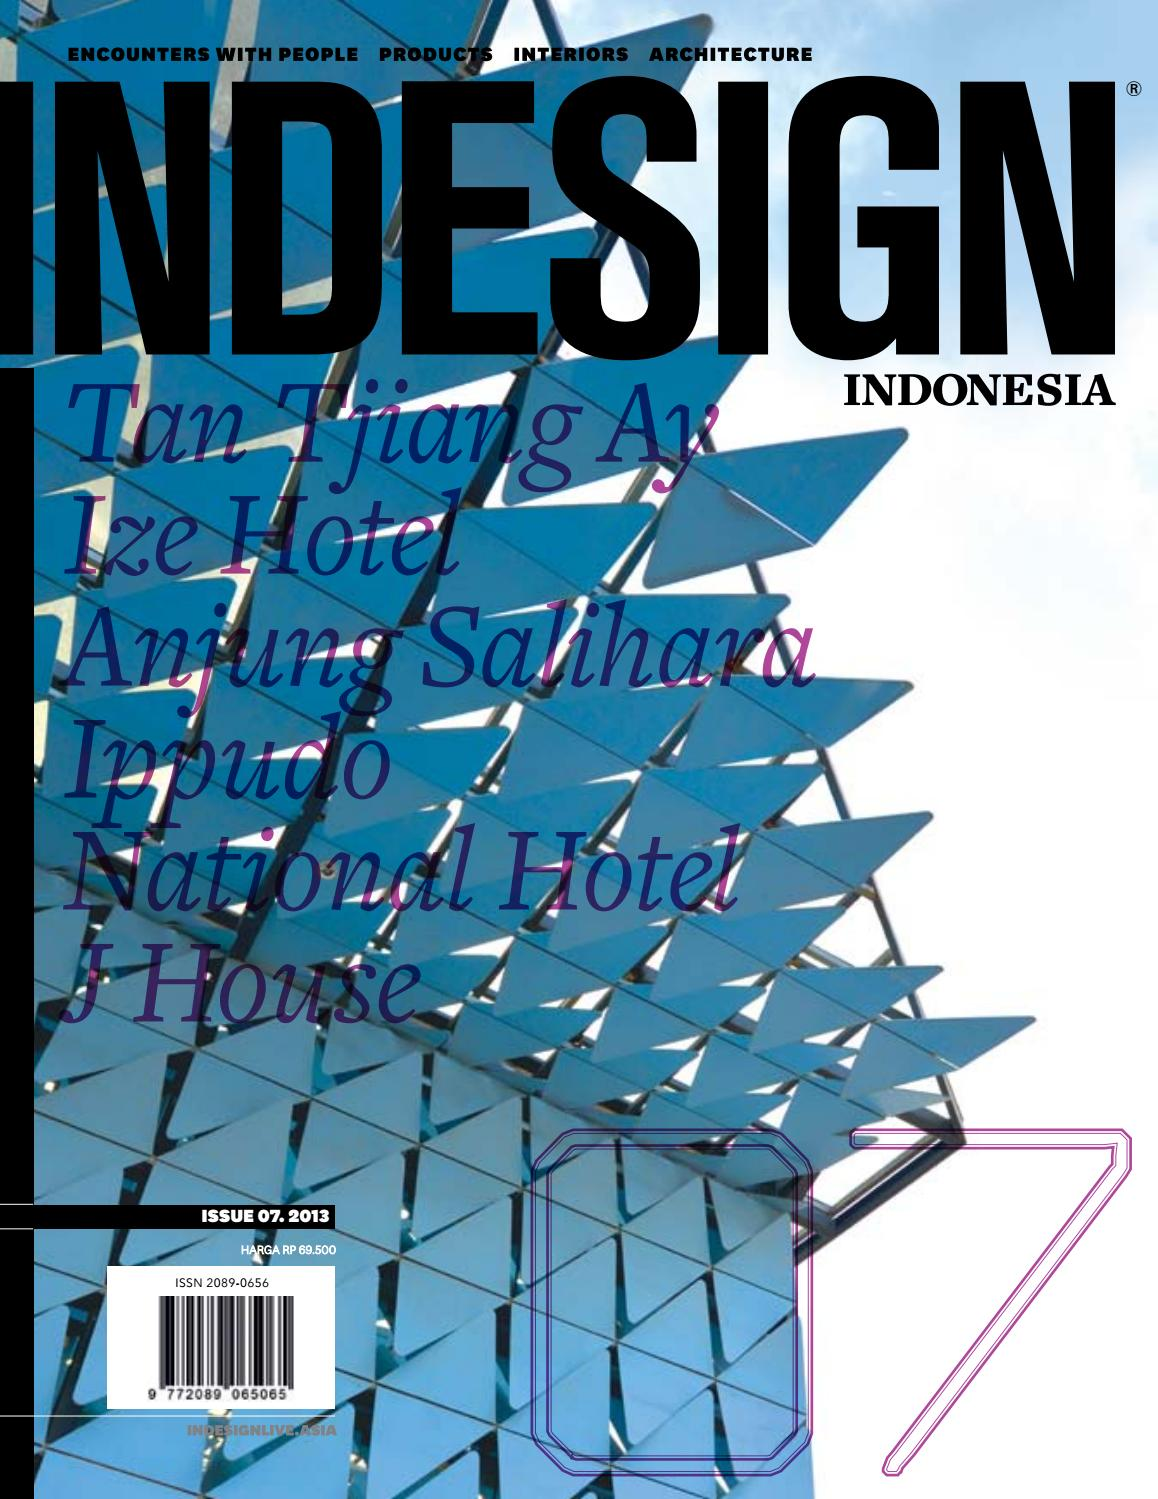 Indesign Indonesia 7 2013 By Sunthy Sunowo Issuu